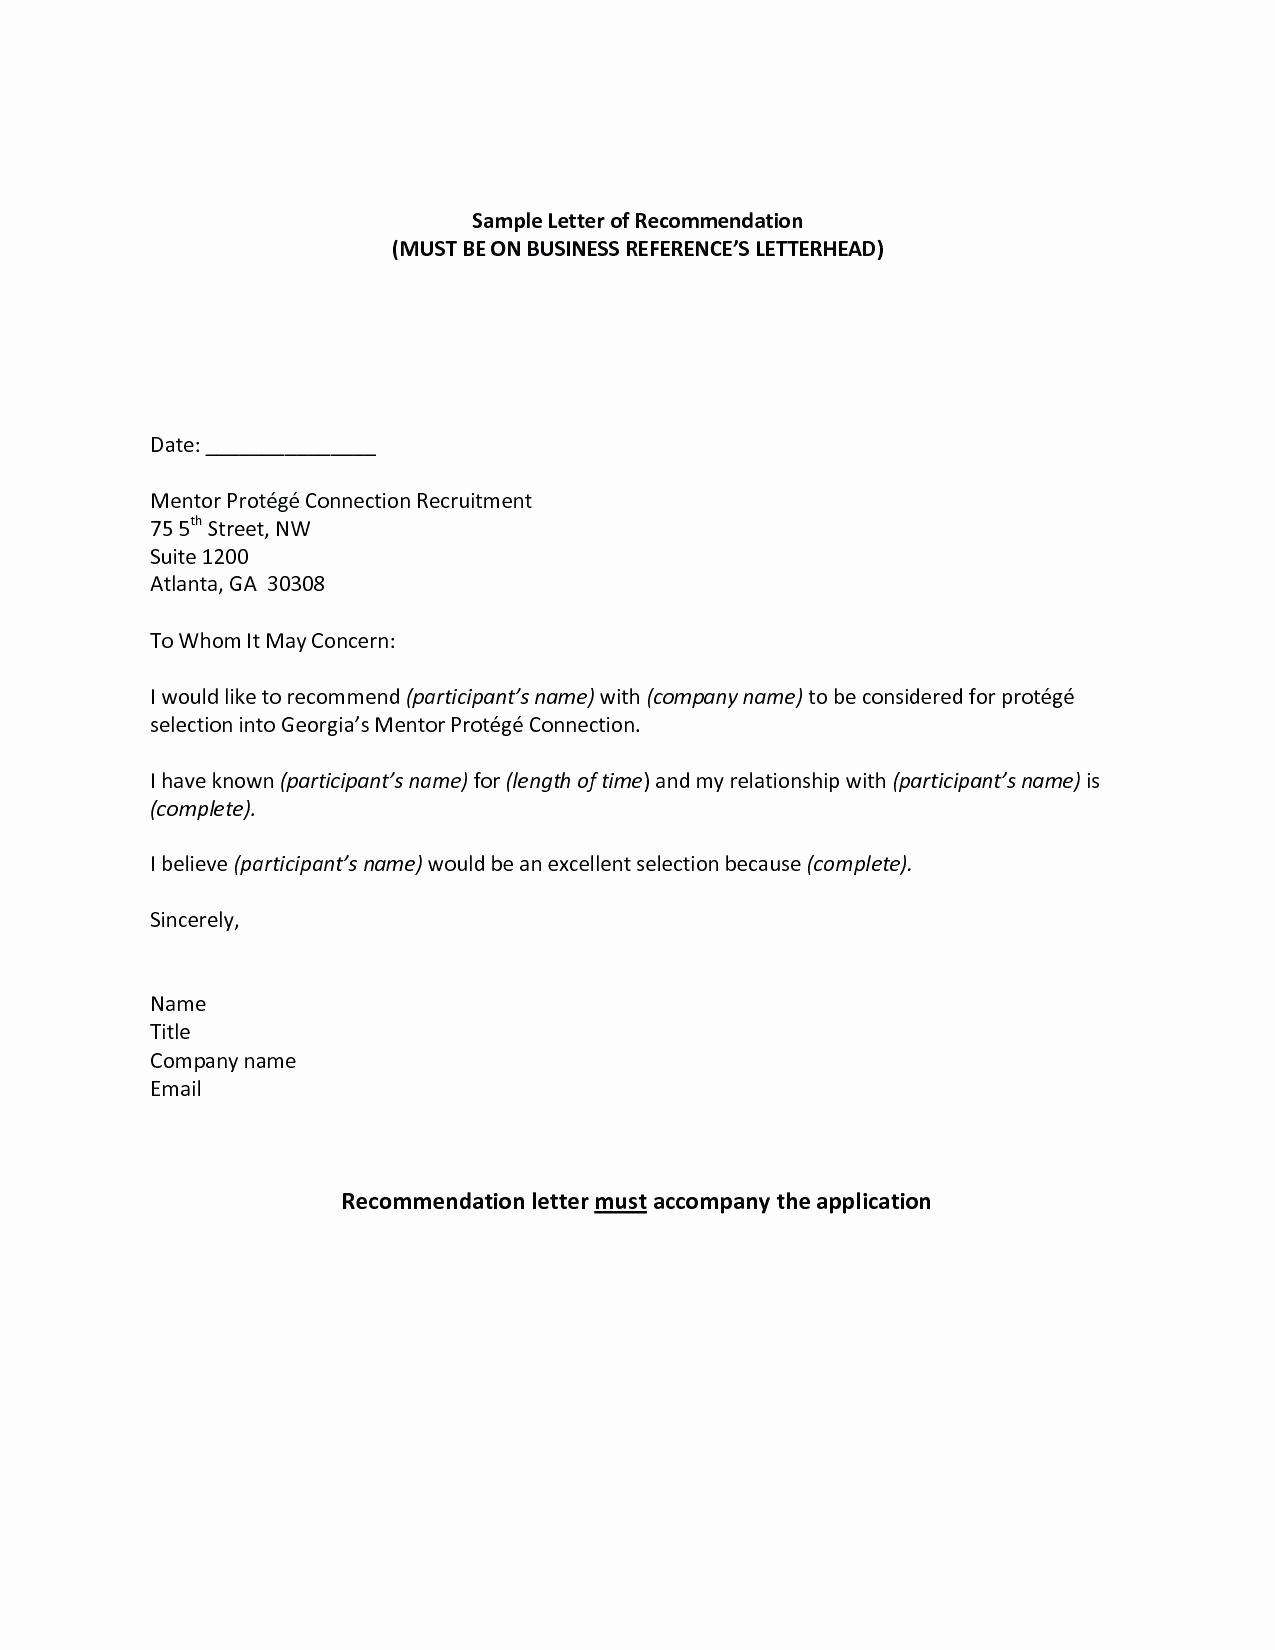 Letter Of Recommendation Letter Template Awesome Mortgage Reference Letter From Employer Template Samples